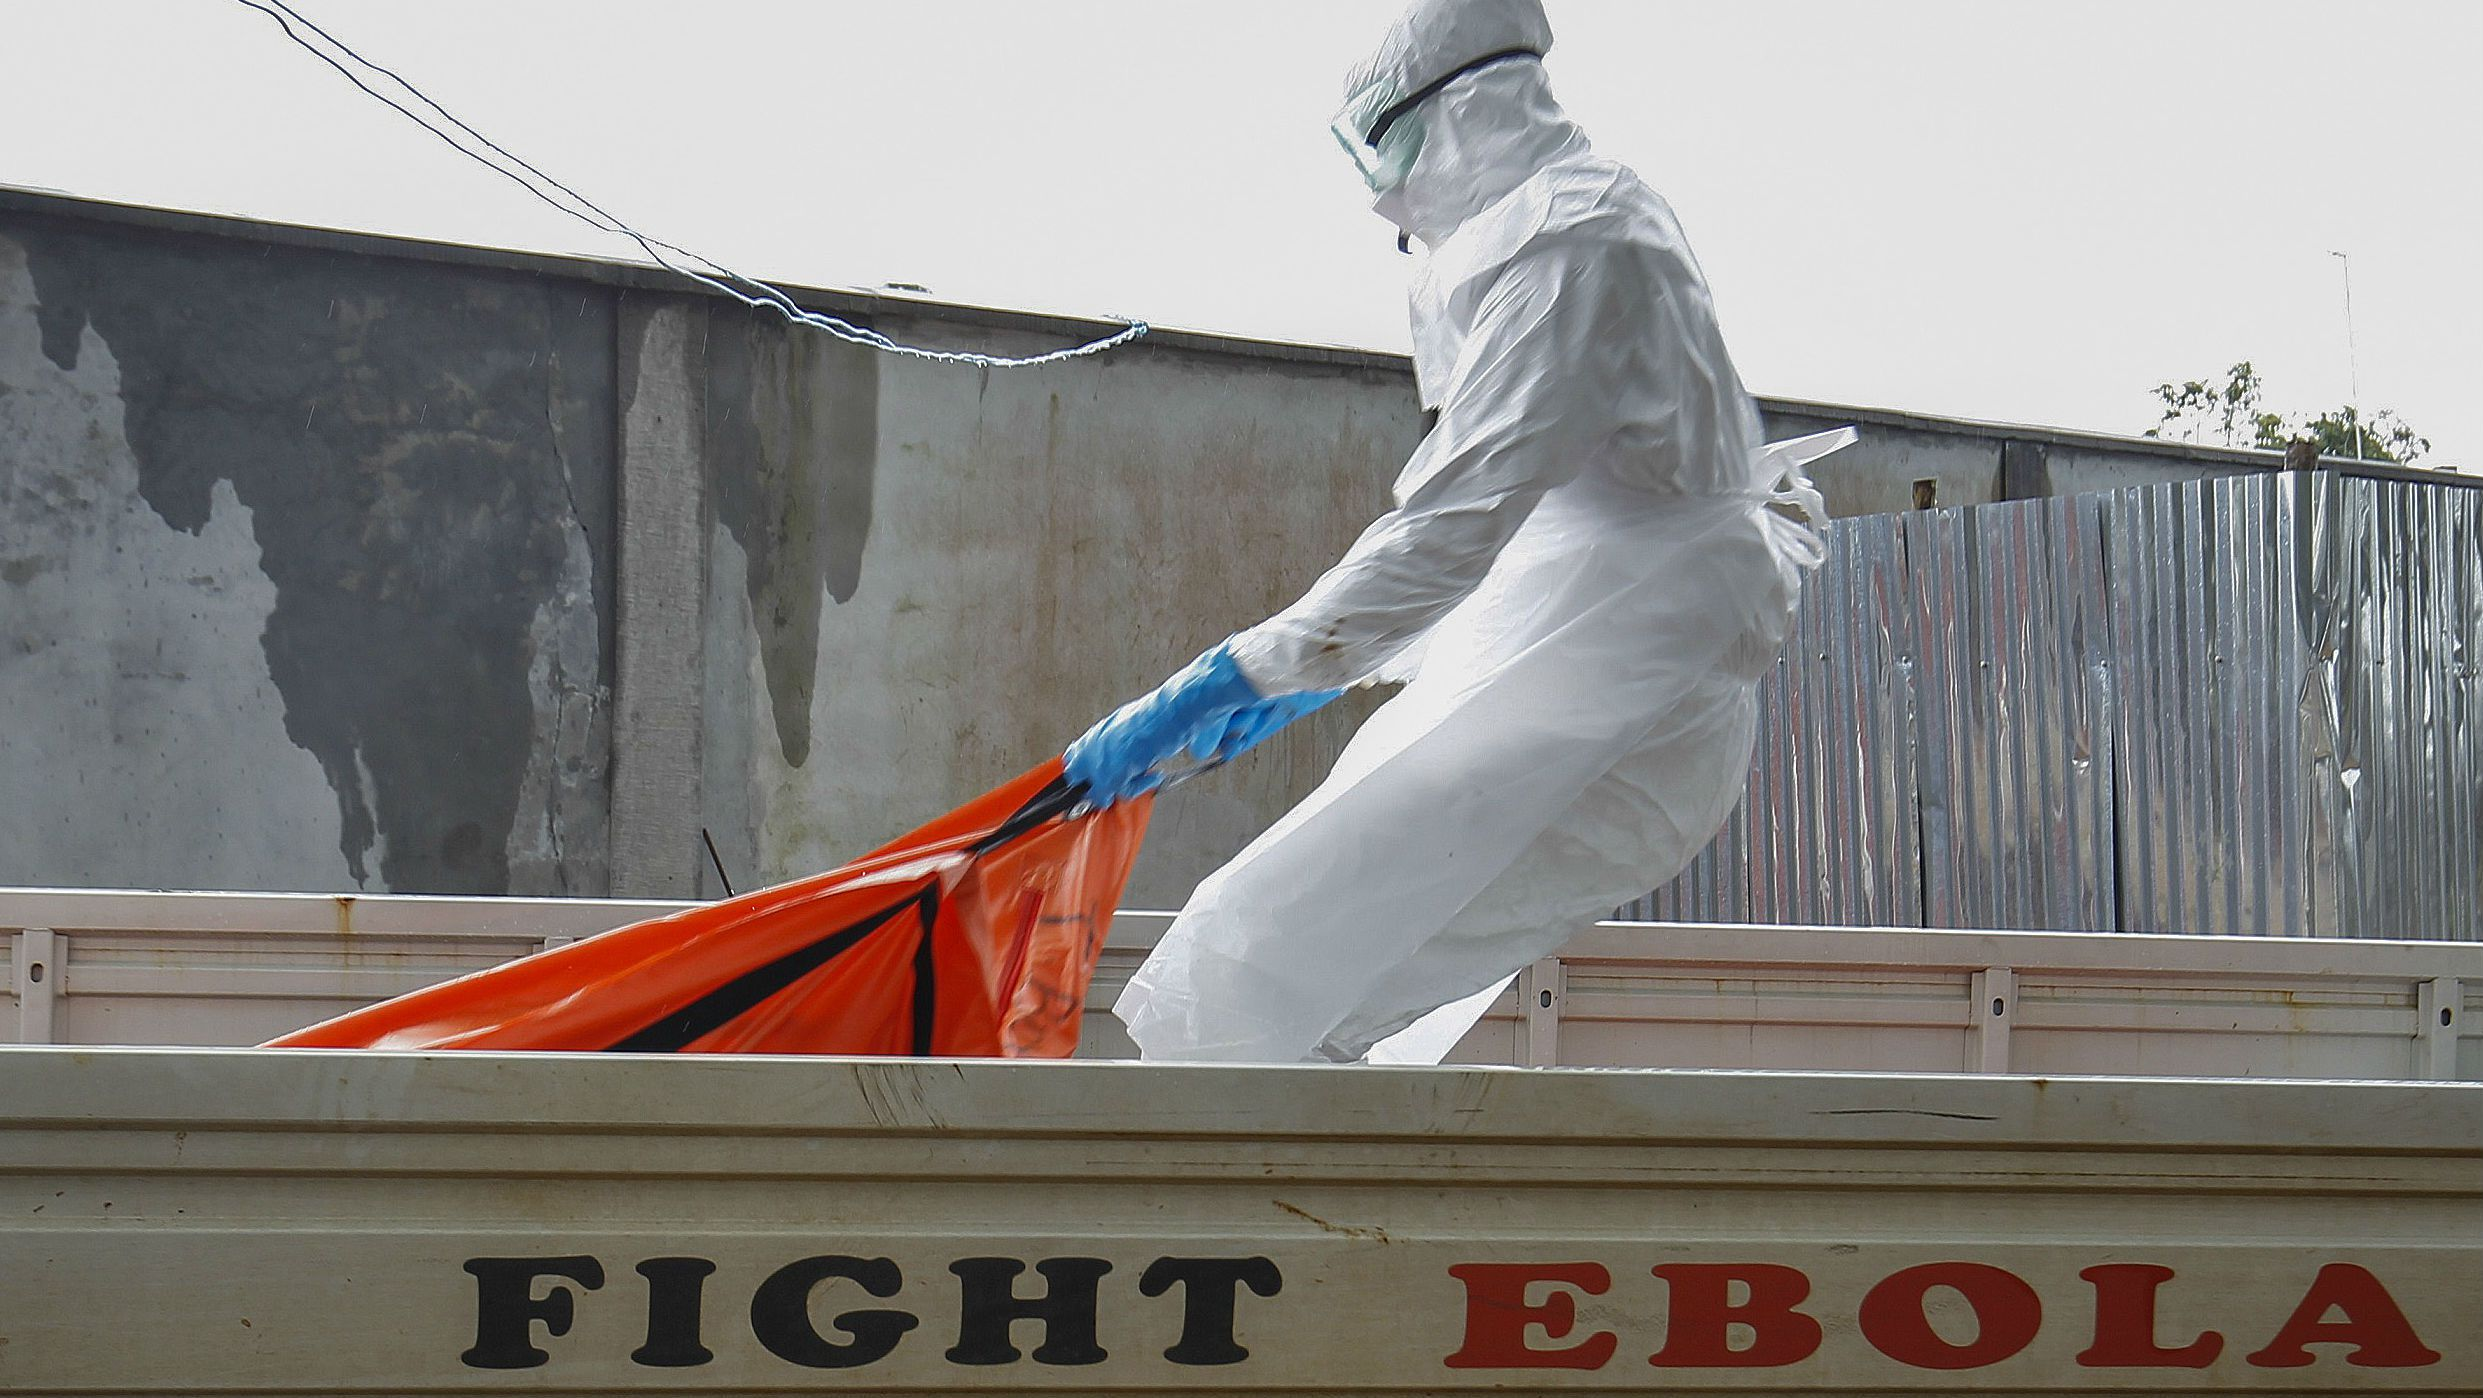 epa04739376 (FILE) A file picture dated 13 October 2014 shows a Liberian health worker in a burial squad drags an Ebola victim's body for cremation from the ELWA treatment center in Monrovia, Liberia. Liberia is declared free from Ebola on 09 April 2015 after 42 days without a new case, the medical charity Medecins Sans Frontieres reported, but urged vigilance until the worst-ever recorded outbreak of the virus is extinguished in neighbouring Guinea and Sierra Leone. The last patient in Liberia died on 27 March 2015, and by 09 April 2015 the nation reaches the official World Health Organization (WHO) standard of 42 days without a new Ebola case. A total of 10,980 people have been killed and more than 26,500 people were infected by Ebola disease since the outbreak erupted in a remote area of Guinea in December 2013, according to WHO. EPA/AHMED JALLANZO